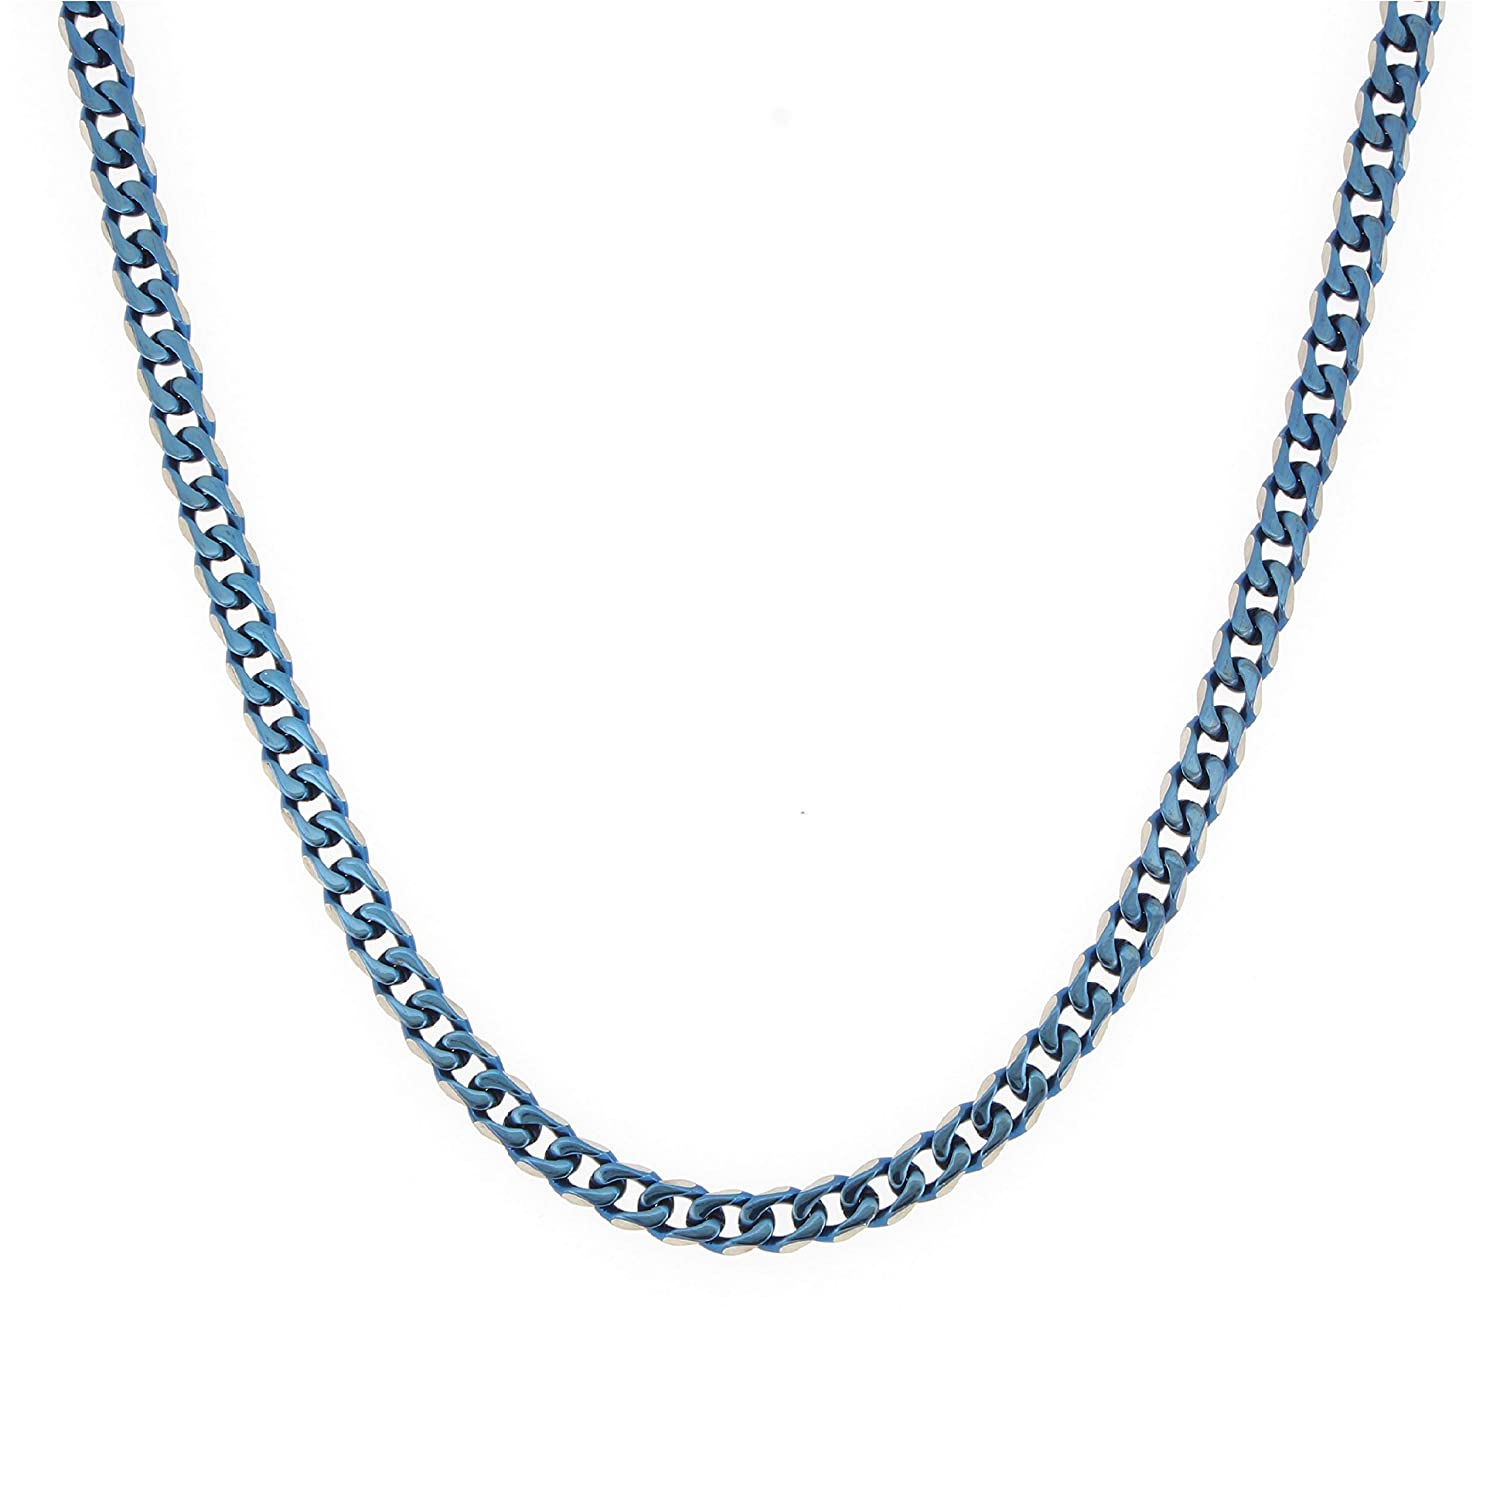 Arrow Jewelry Stainless Steel Two-Tone Blue IP-Plated 24 Curb Chain Necklace 6.25mm